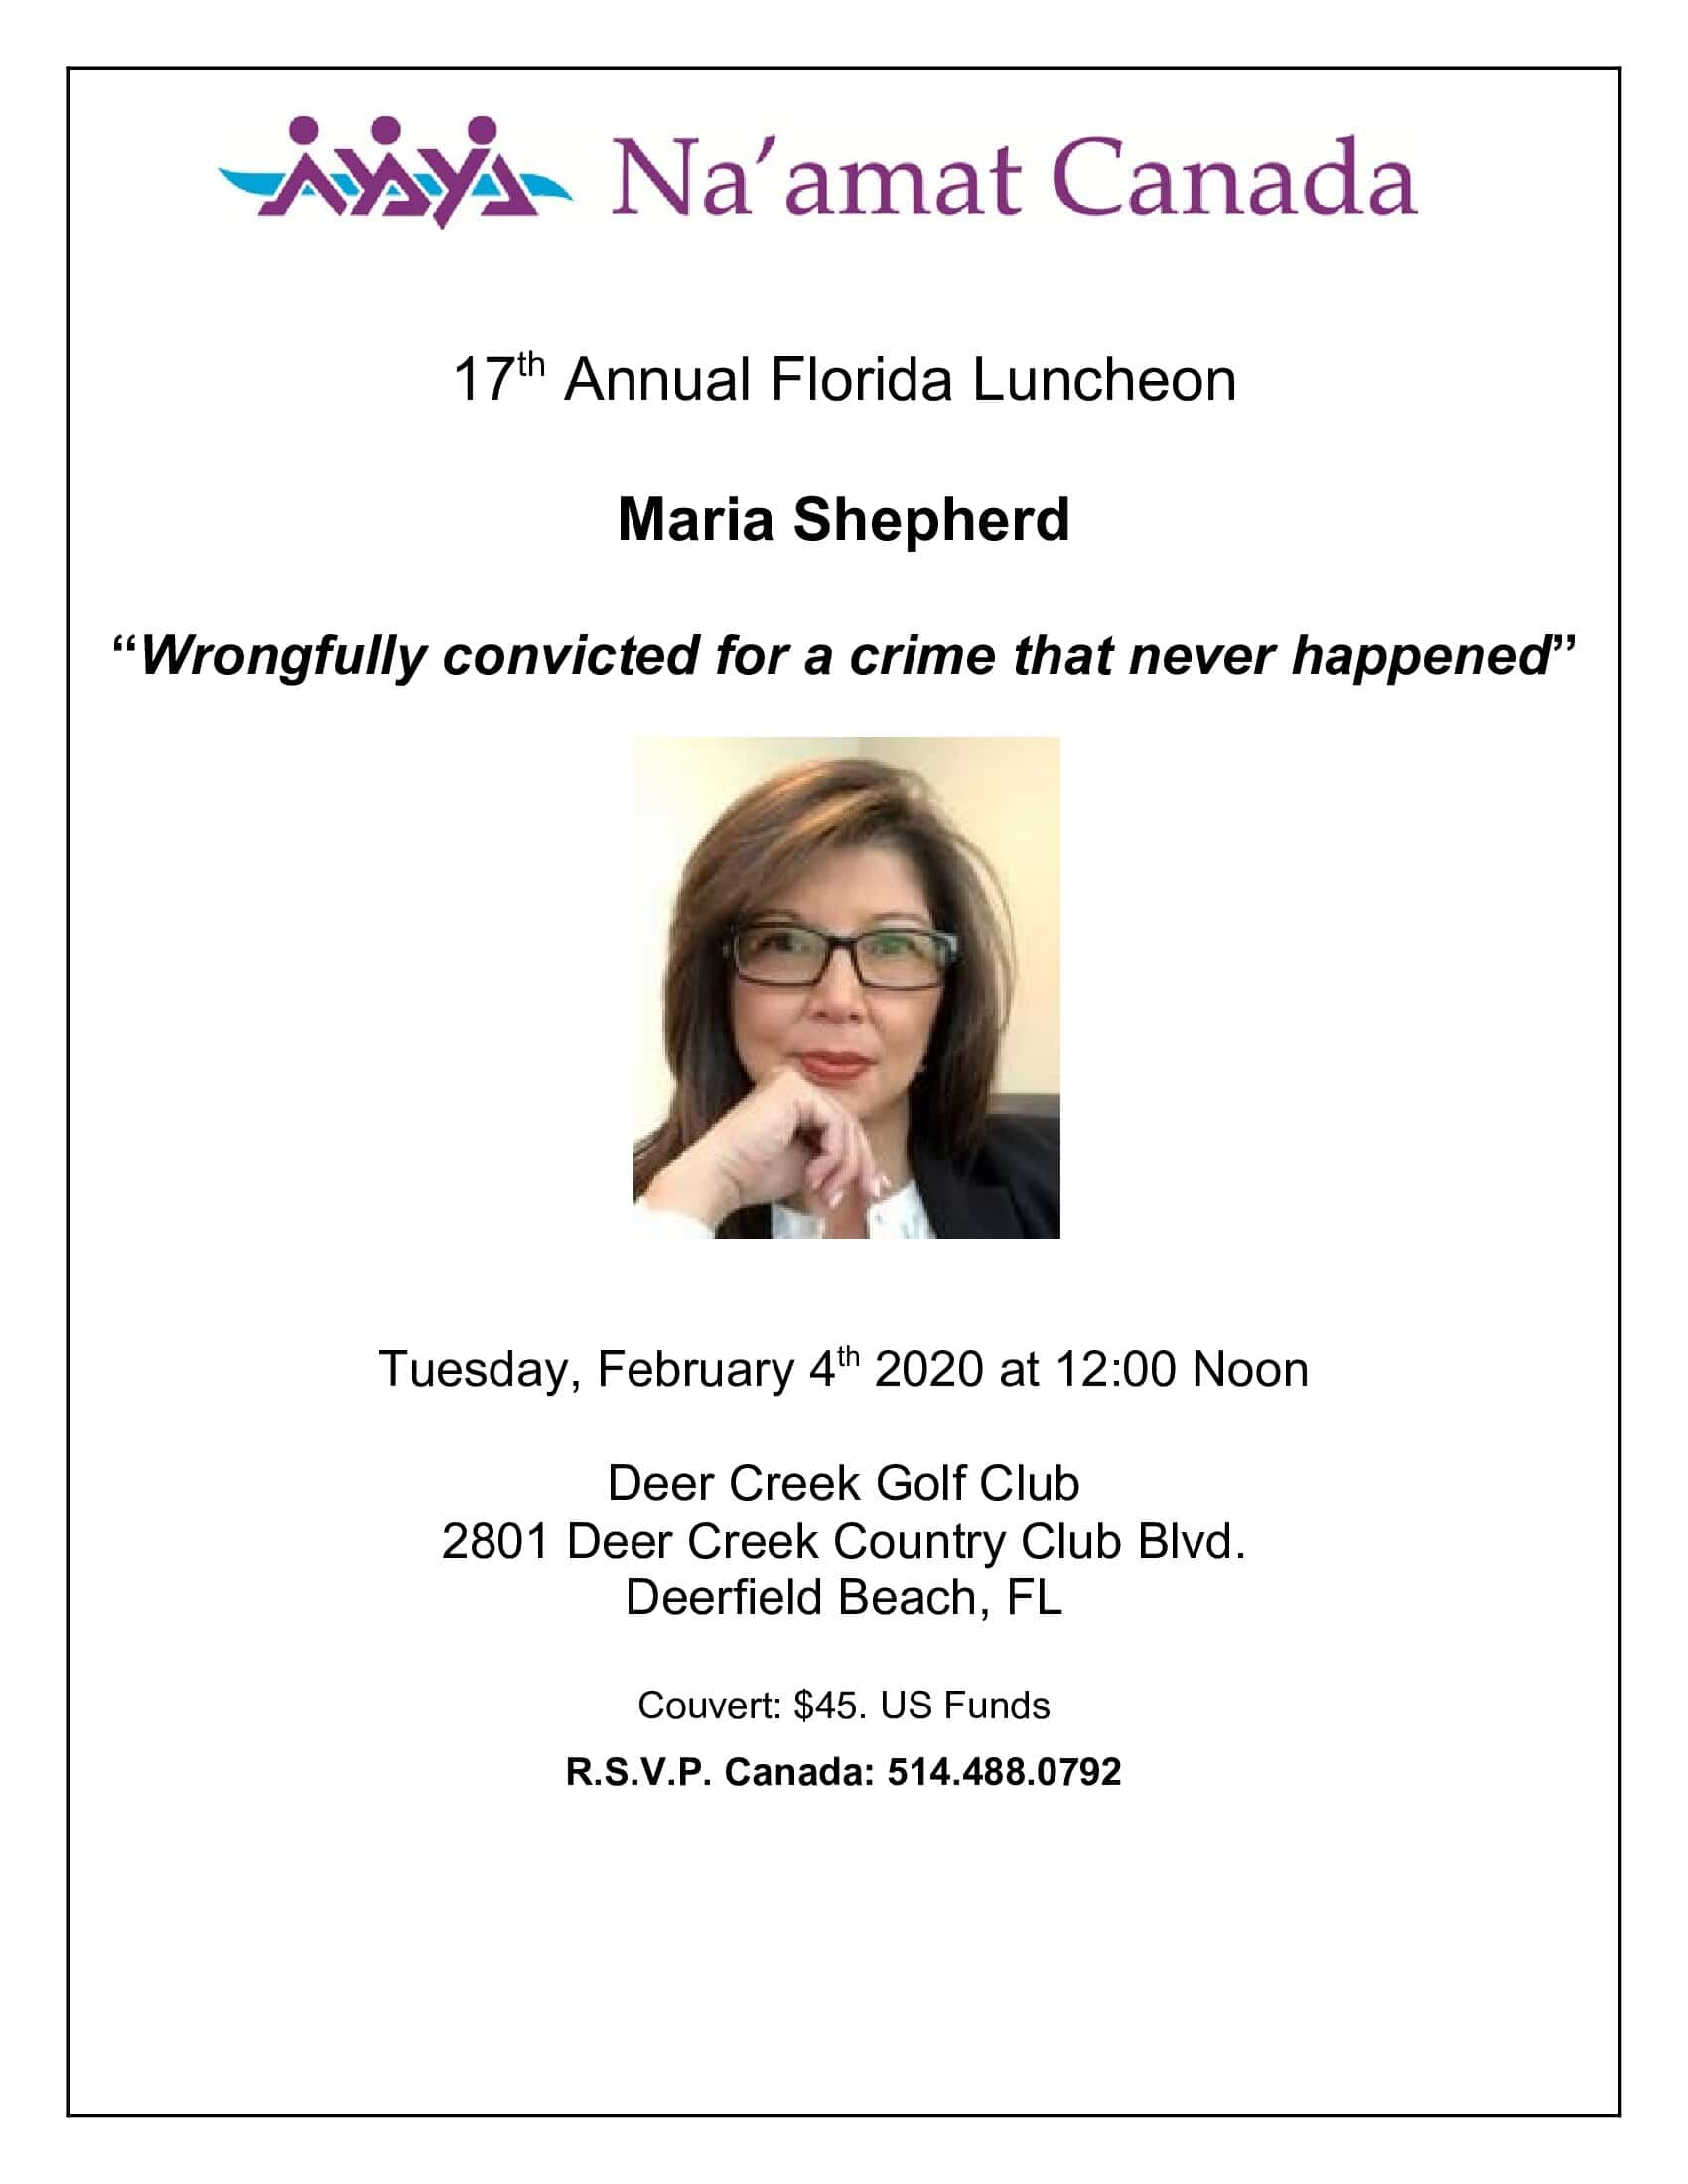 17th Annual Florida Luncheon flyer (2)